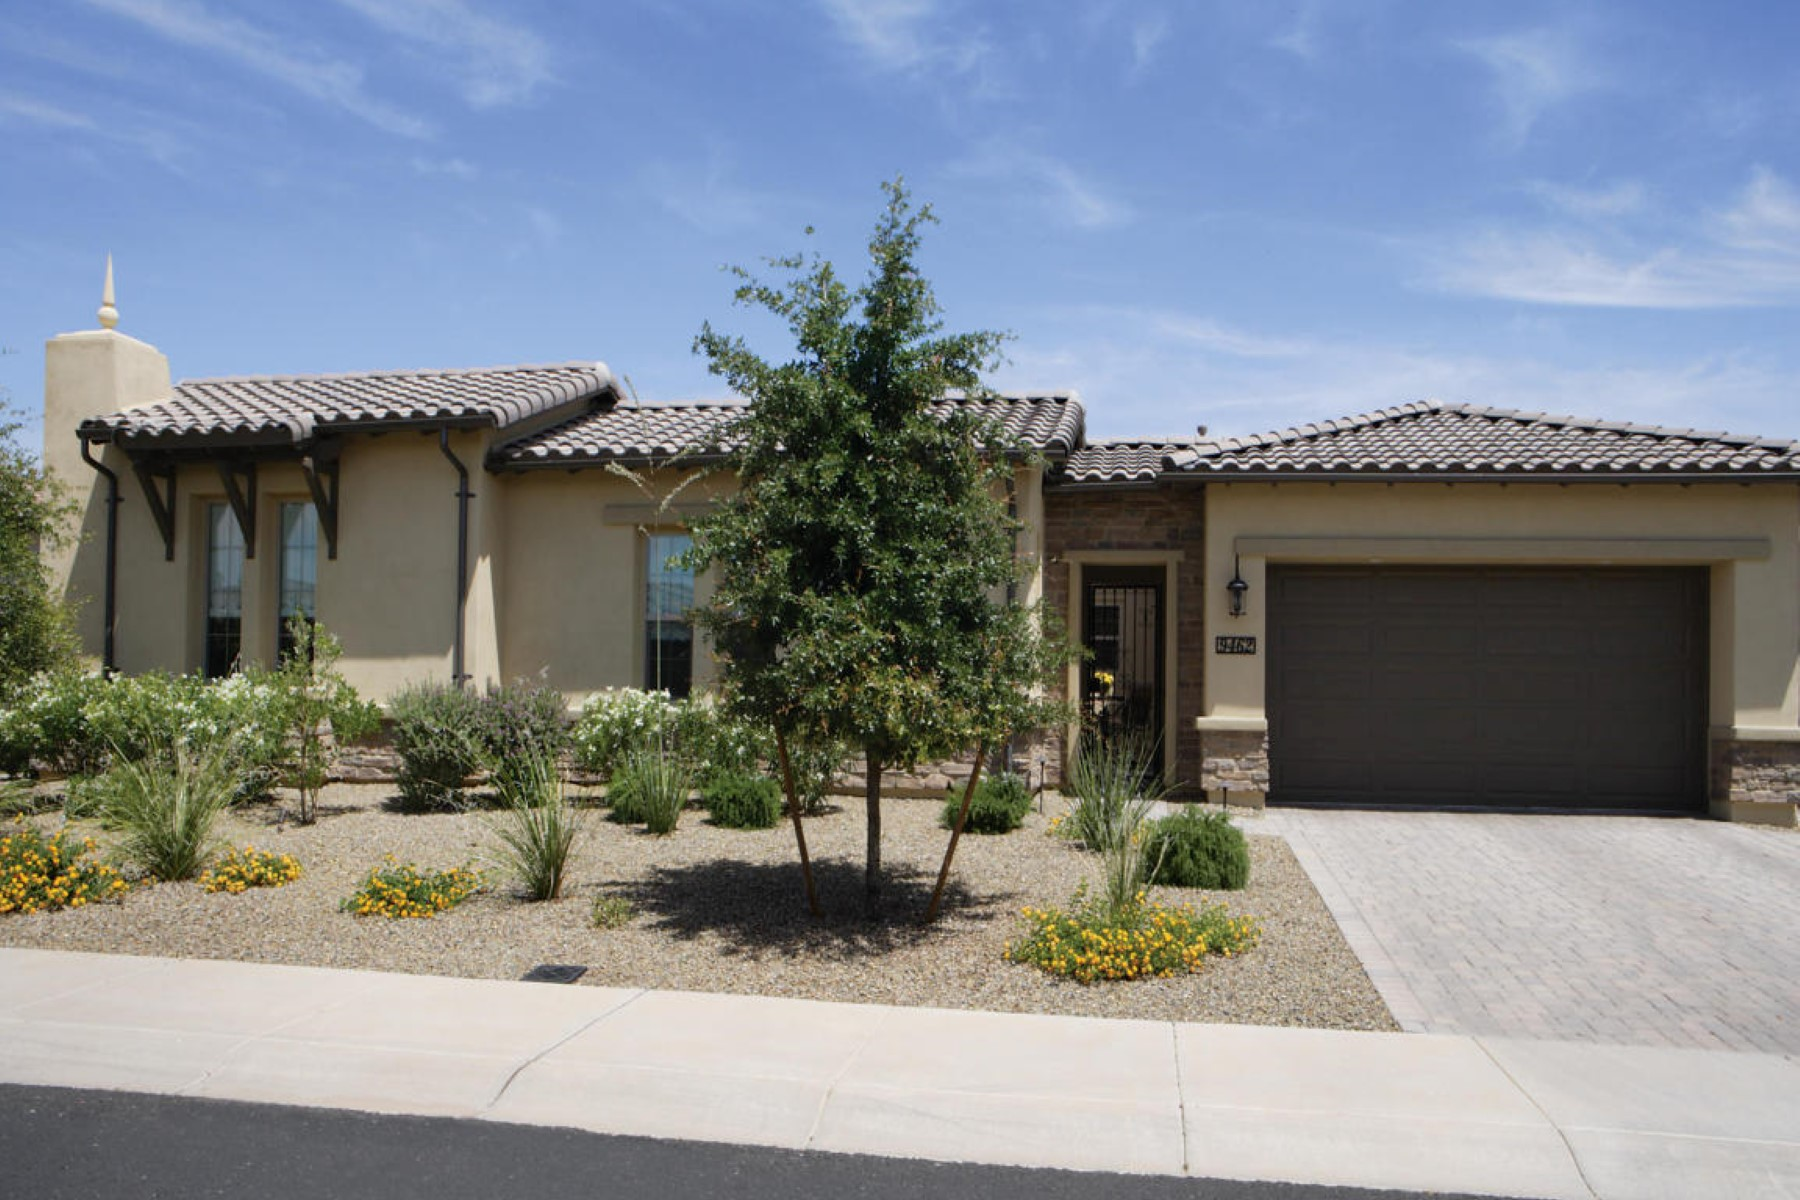 一戸建て のために 売買 アット Camelot Home in the gated-community of Windrose Estates 9462 E Windrose Dr Scottsdale, アリゾナ 85260 アメリカ合衆国